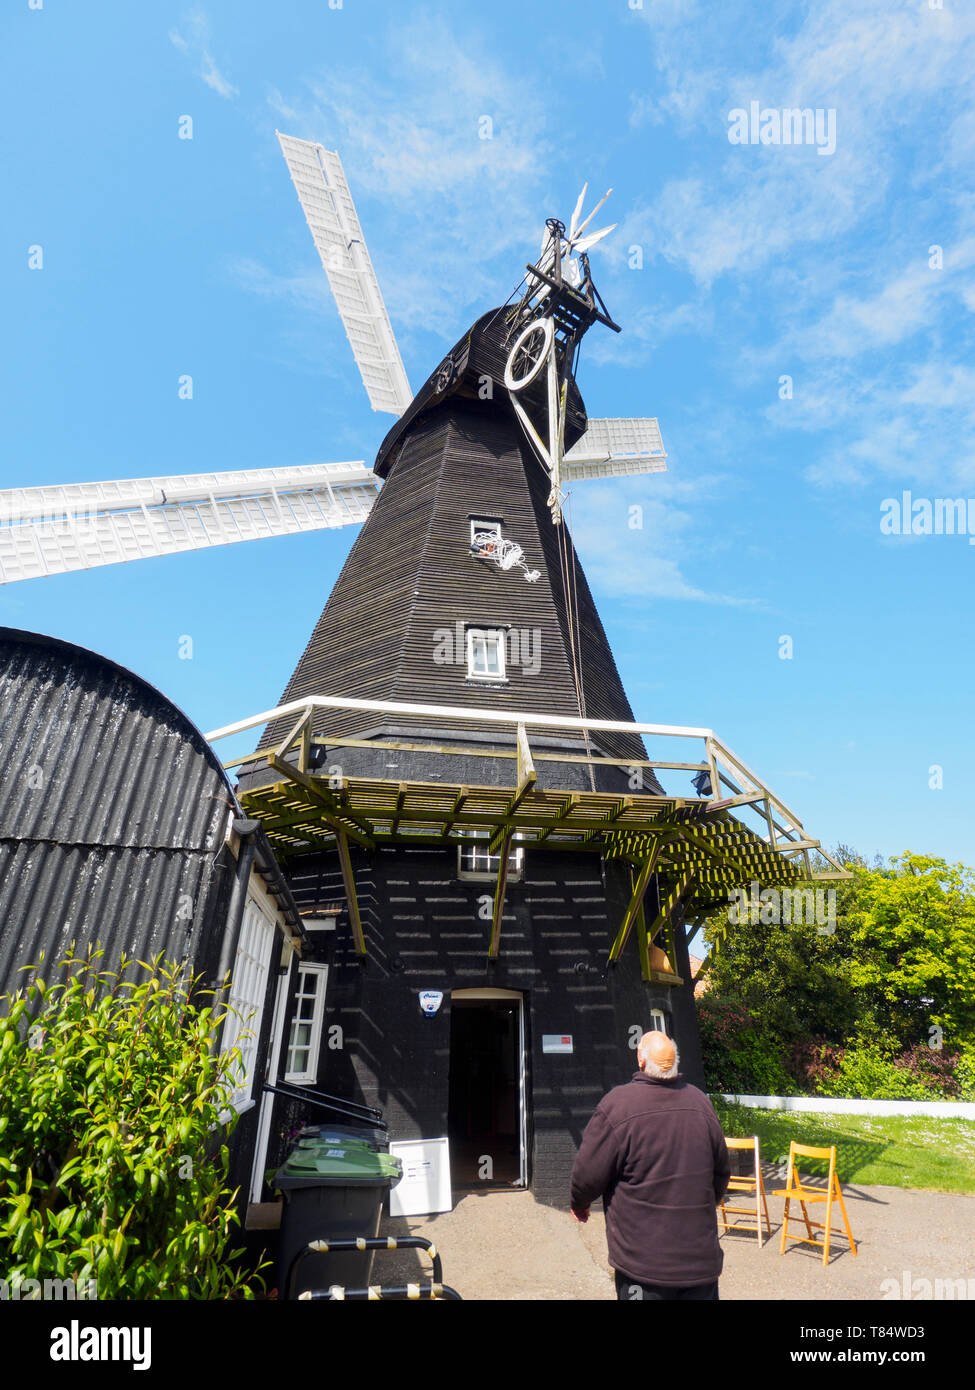 Herne, Kent, UK. 11th May, 2019. National Mills Weekend: Herne Windmill in Kent took part in this national event by opening the doors of its windmill to the public this afternoon. Herne Mill is a Kentish smock windmill dating from 1789. It is Grade I listed and is owned by Kent County Council and cared for by the Friends of Herne Mill.   Credit: James Bell/Alamy Live News - Stock Image